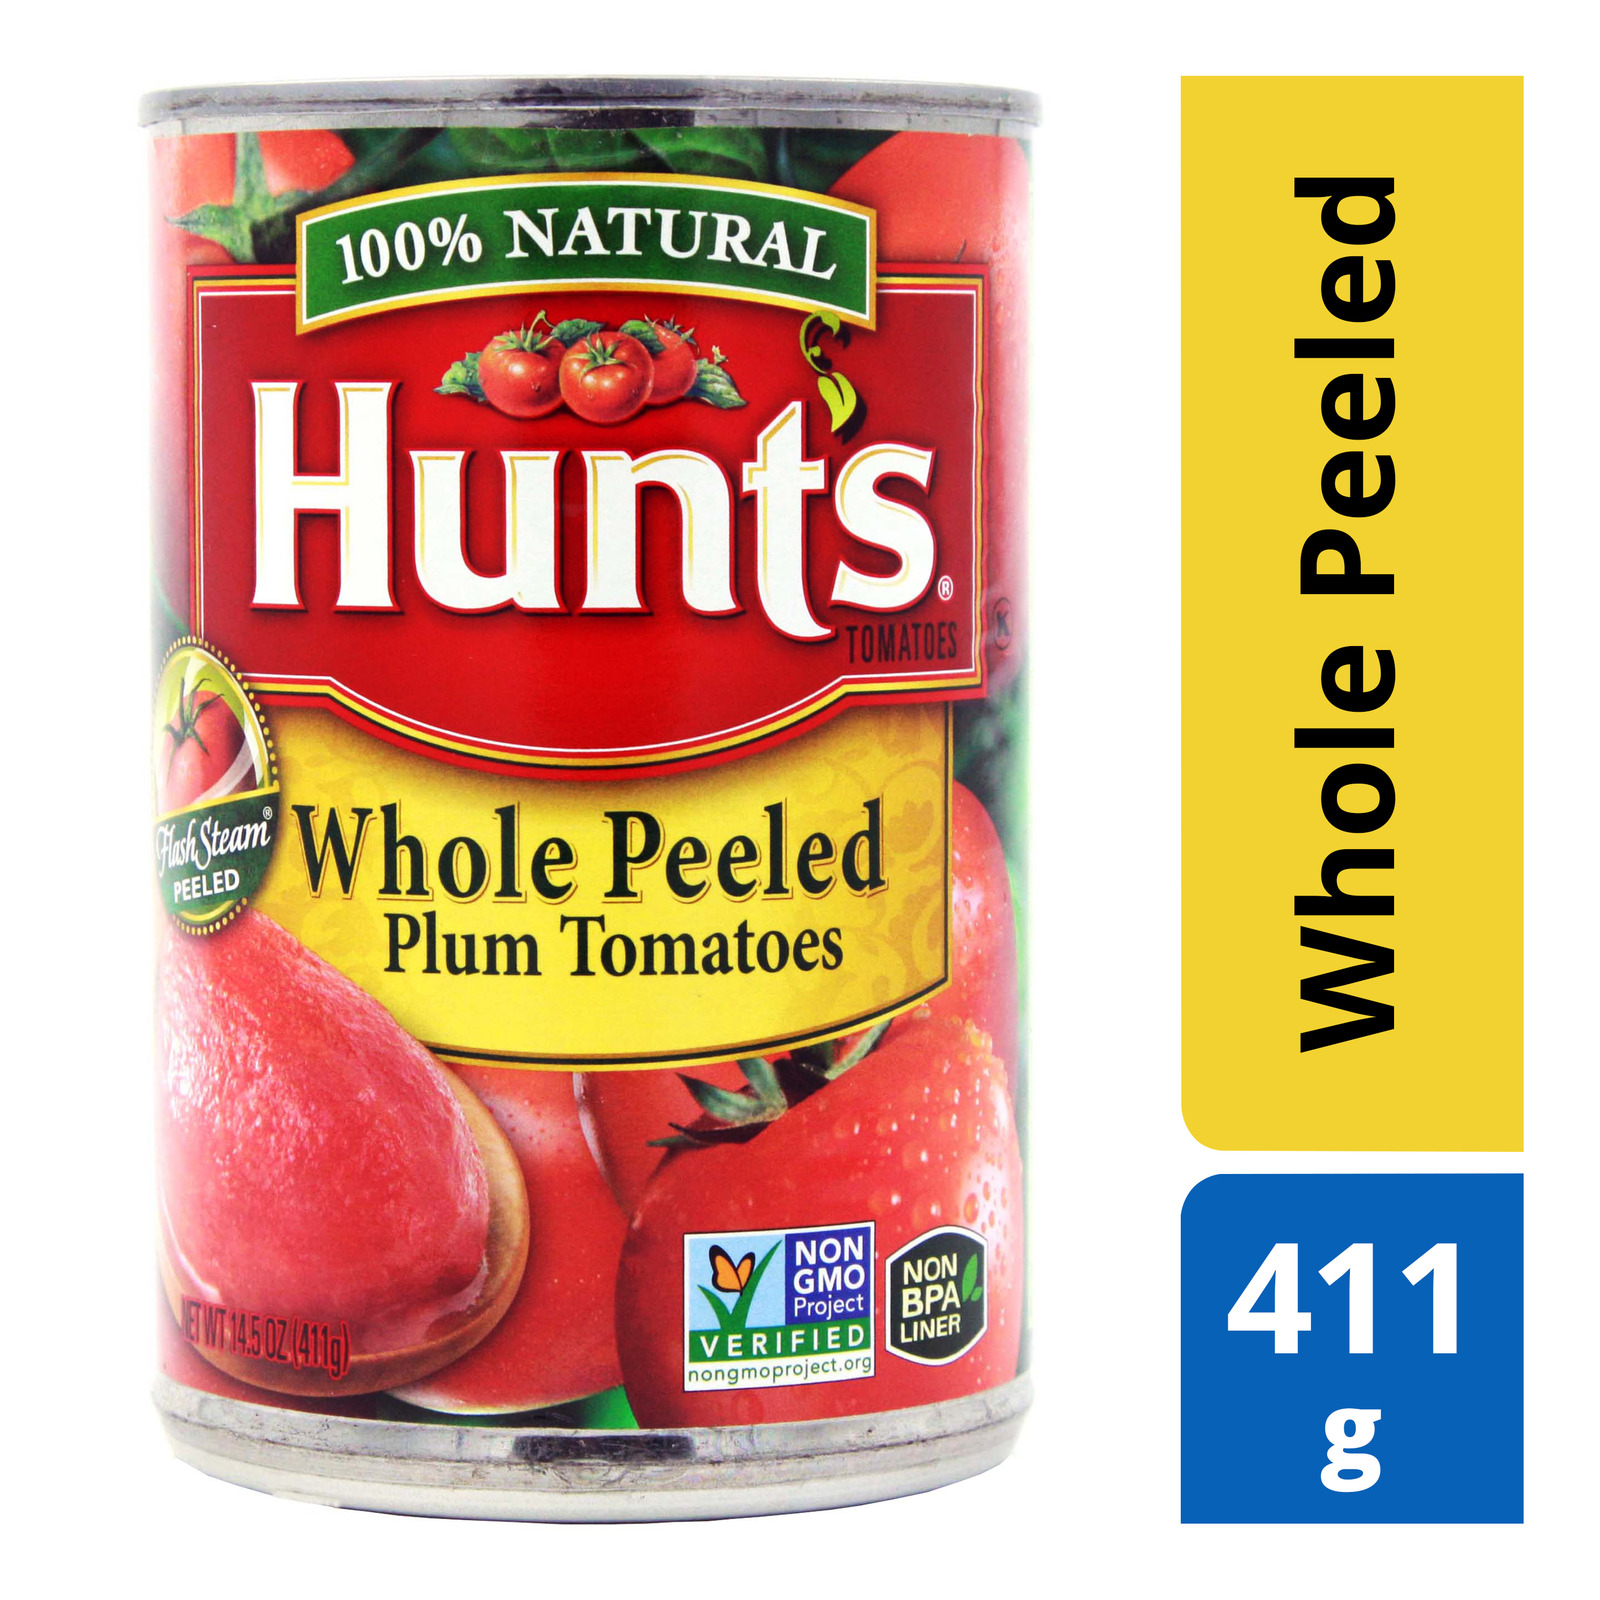 Hunt's Plum Tomatoes - Whole Peeled